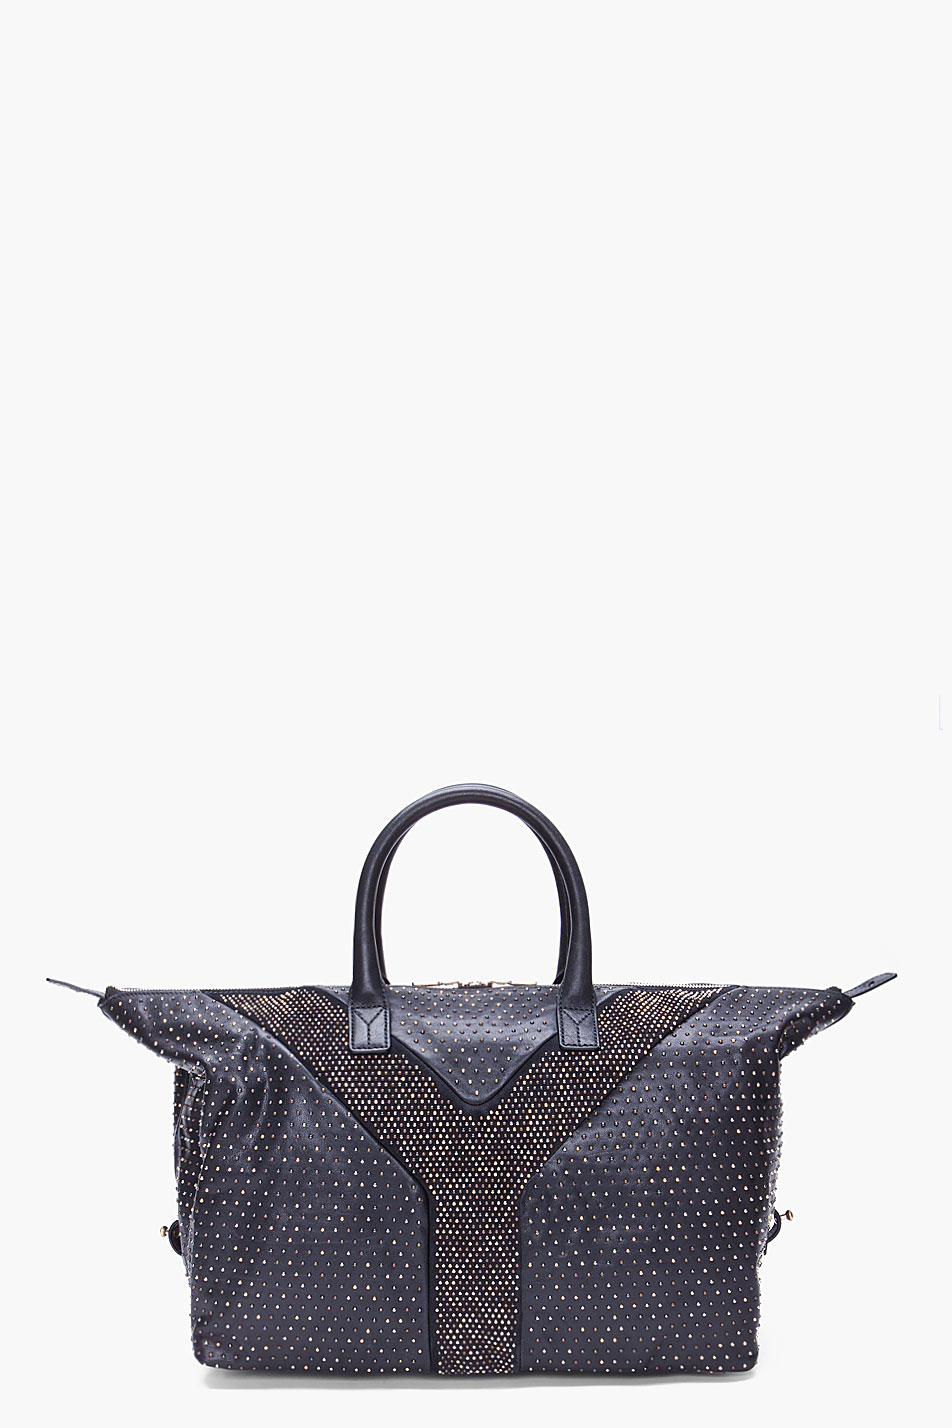 Saint laurent Studded Easy Rock Tote in Blue (black) | Lyst